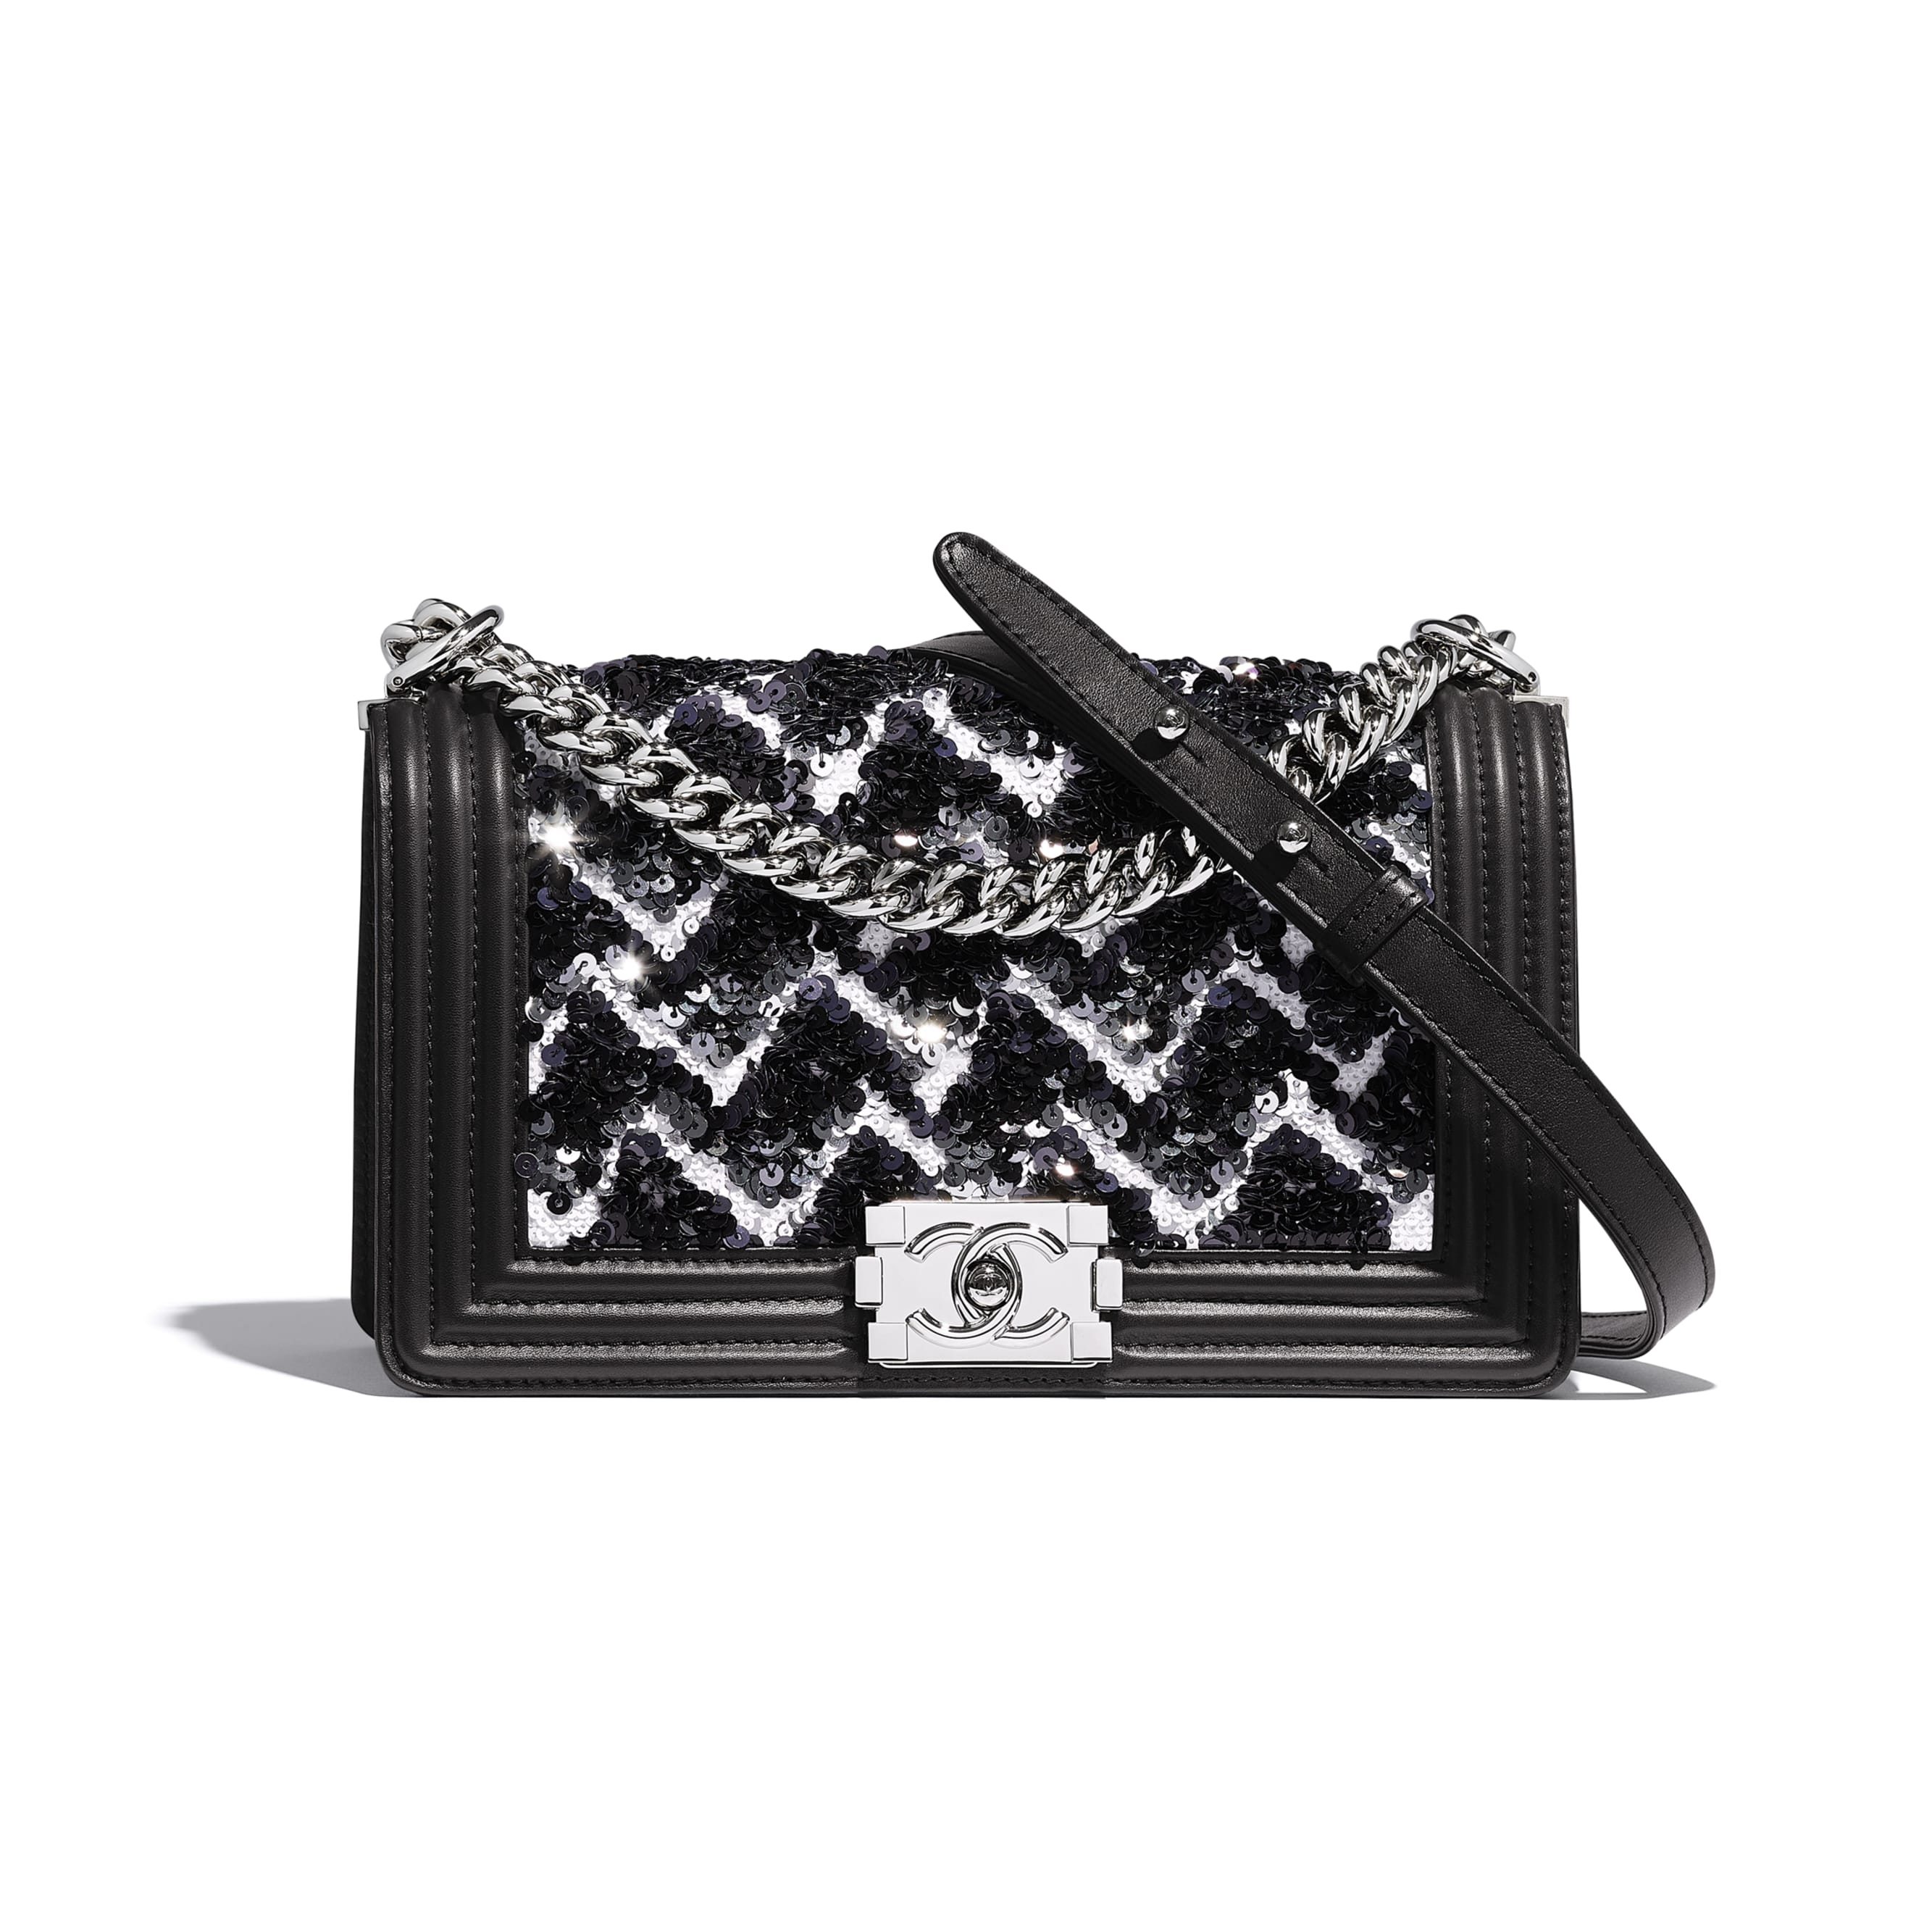 BOY CHANEL Handbag - Black, Silver & White - Sequins, Calfskin & Silver-Tone Metal - Default view - see standard sized version